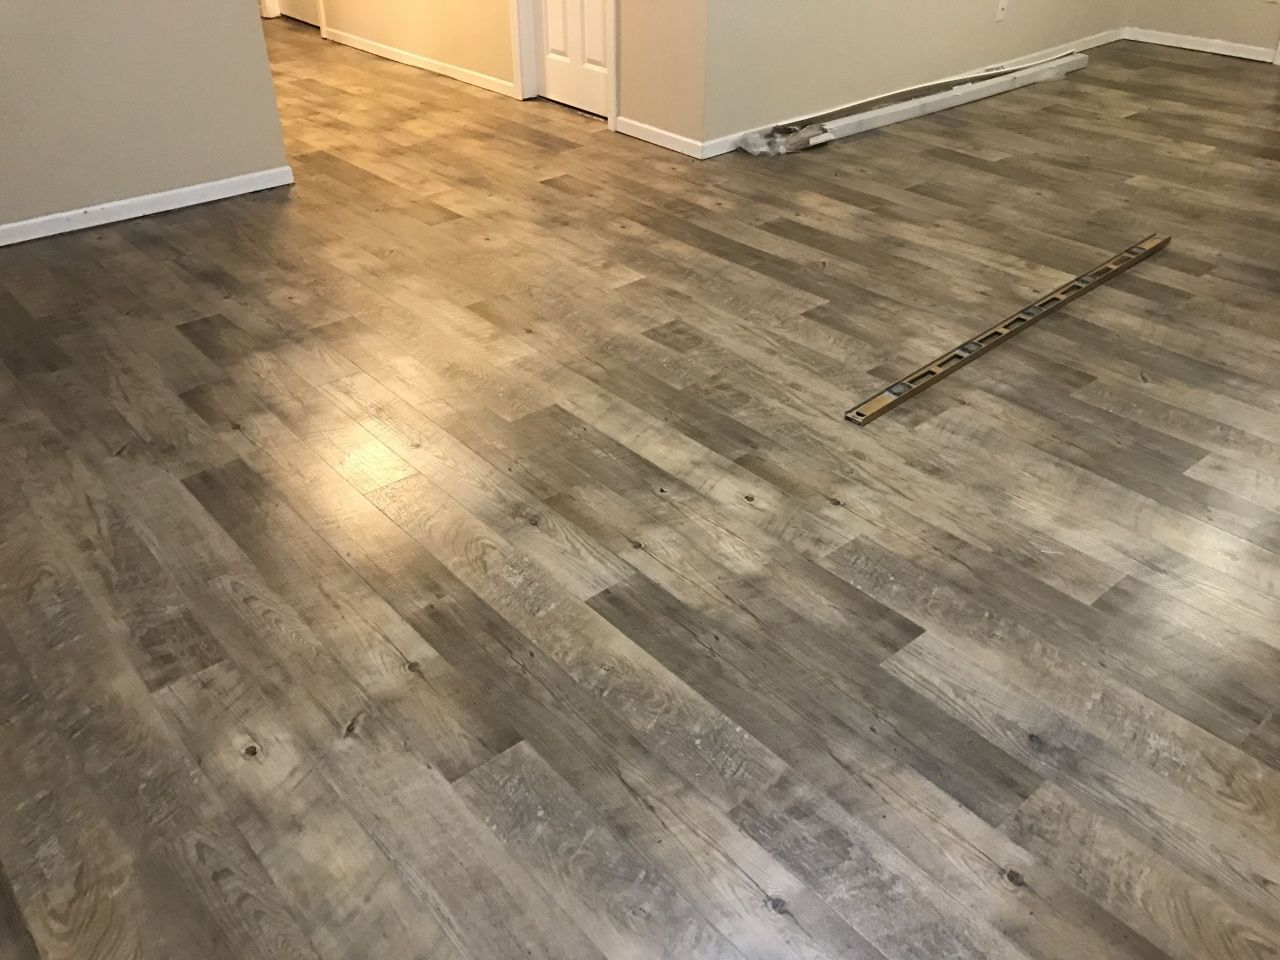 Best Vinyl Plank Flooring for Basement in 2020